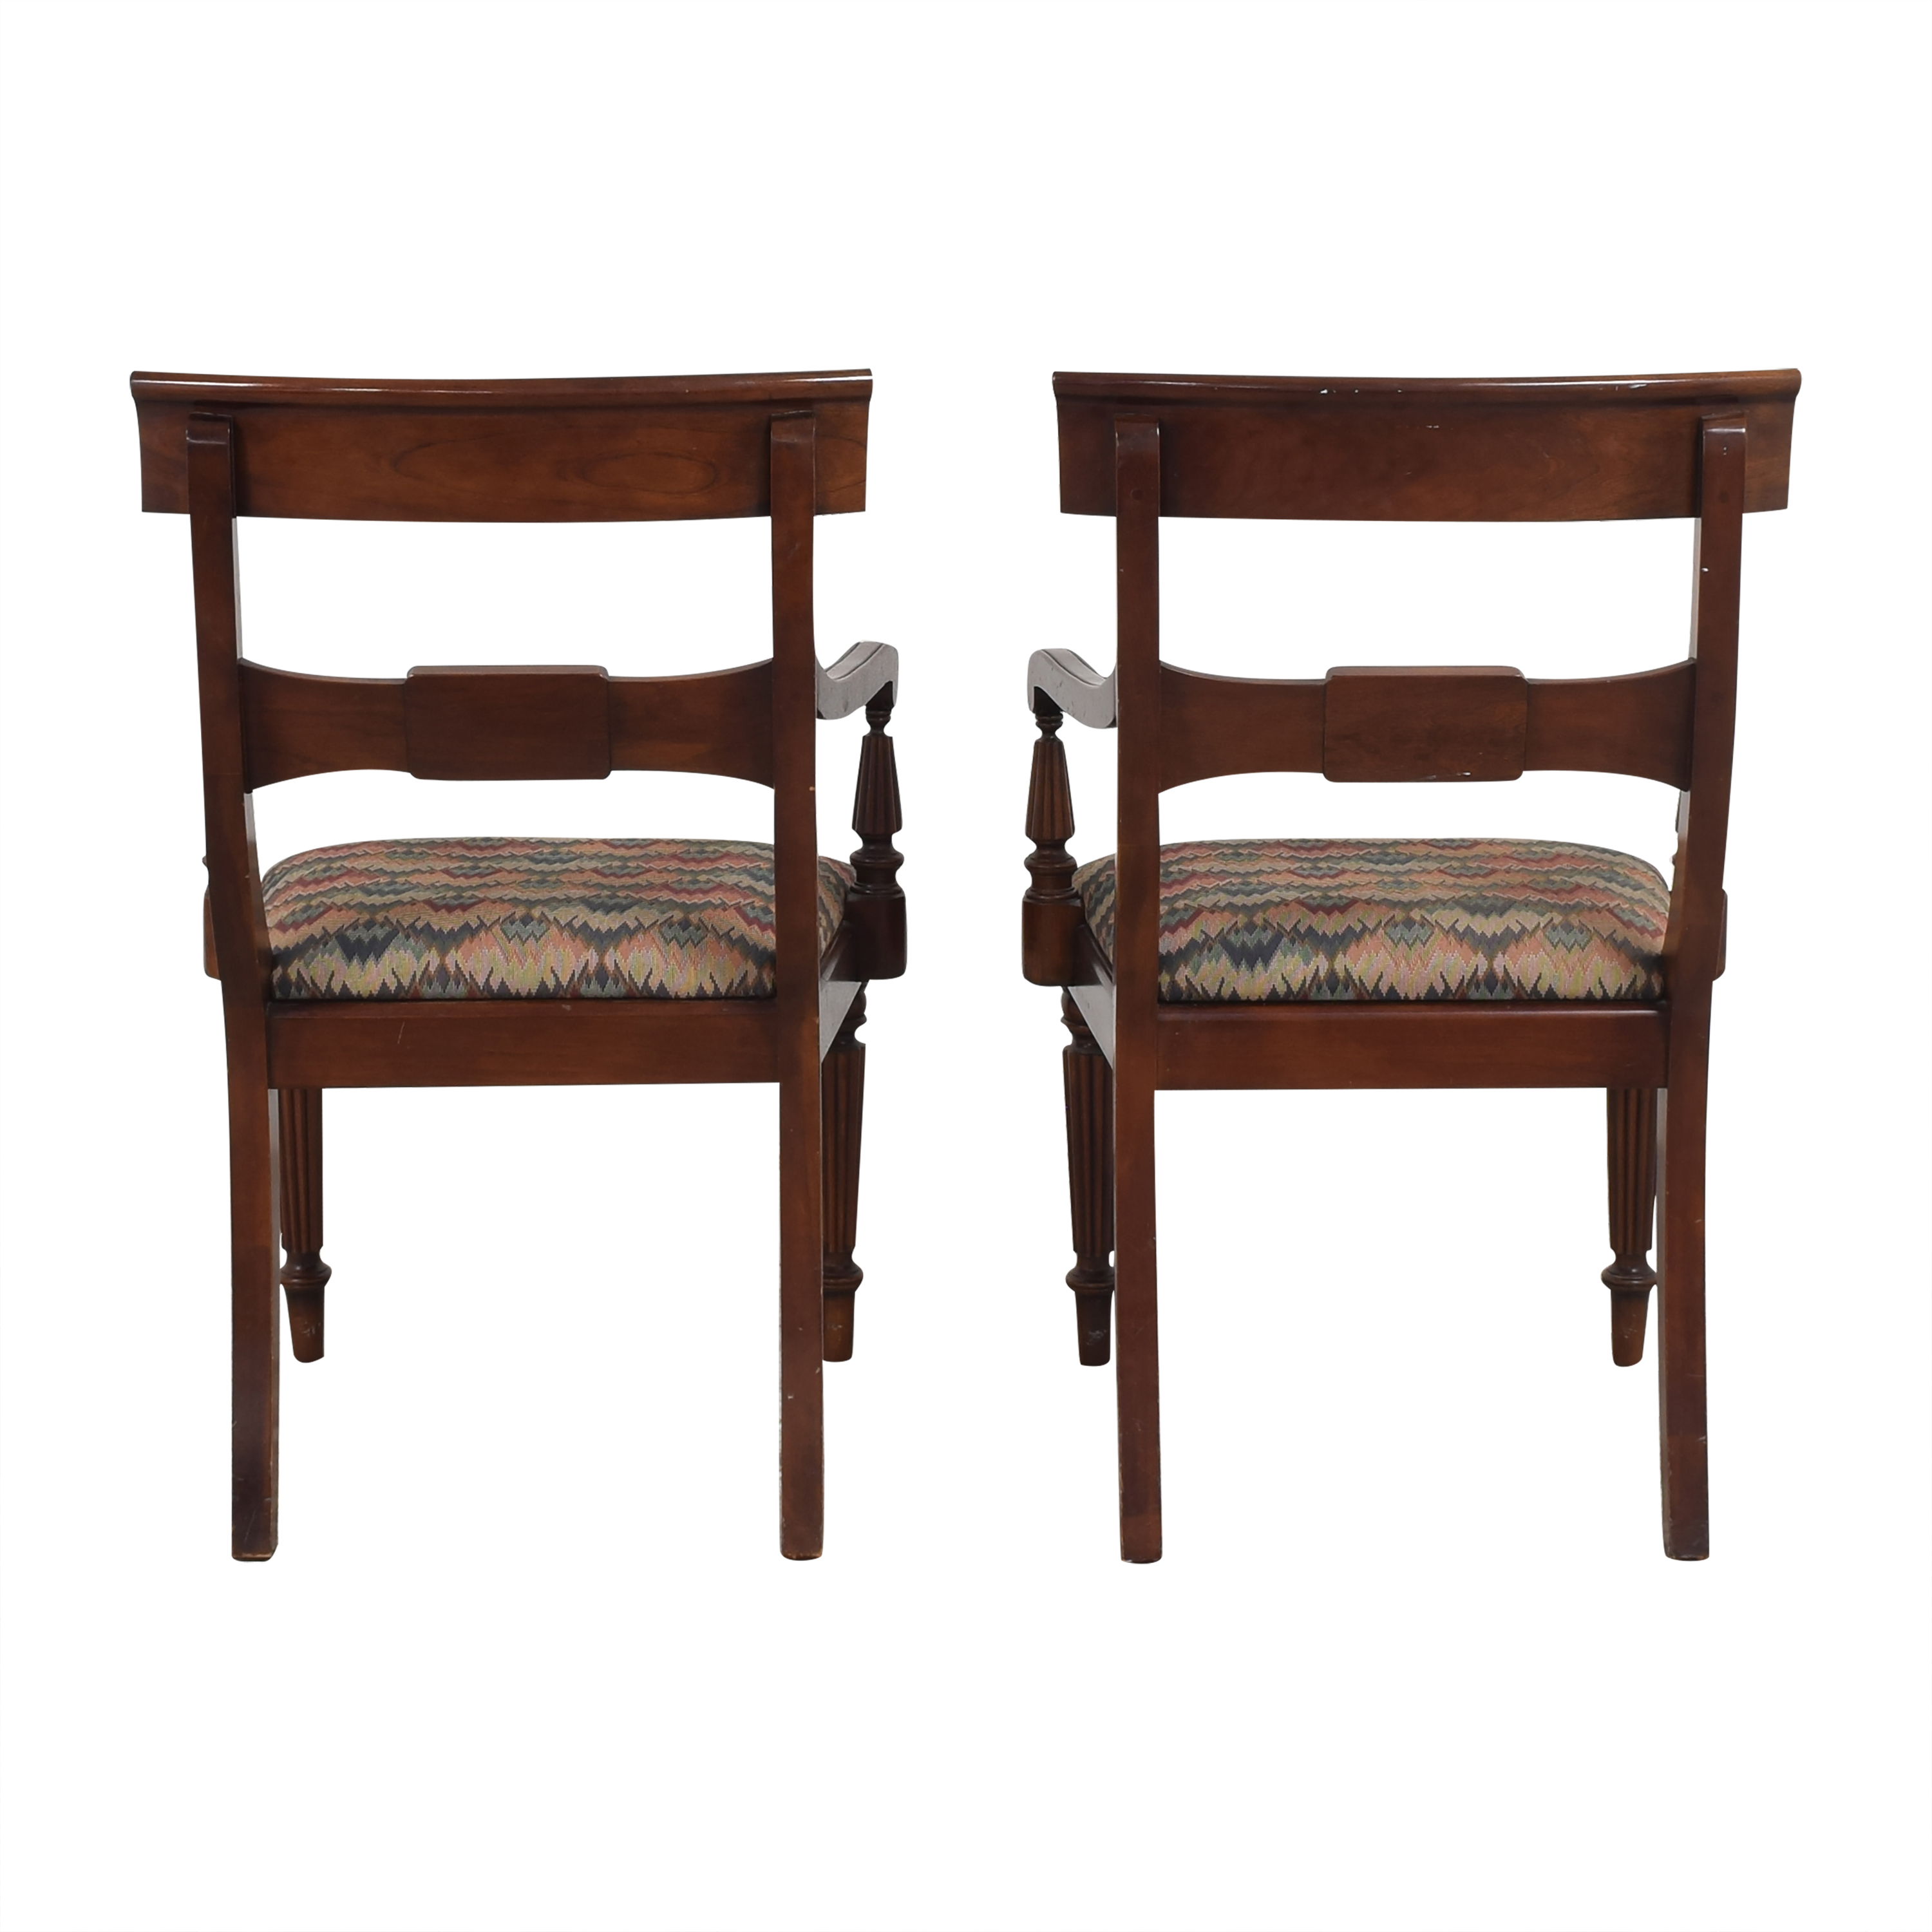 shop Statton Dining Arm Chairs Statton Dining Chairs